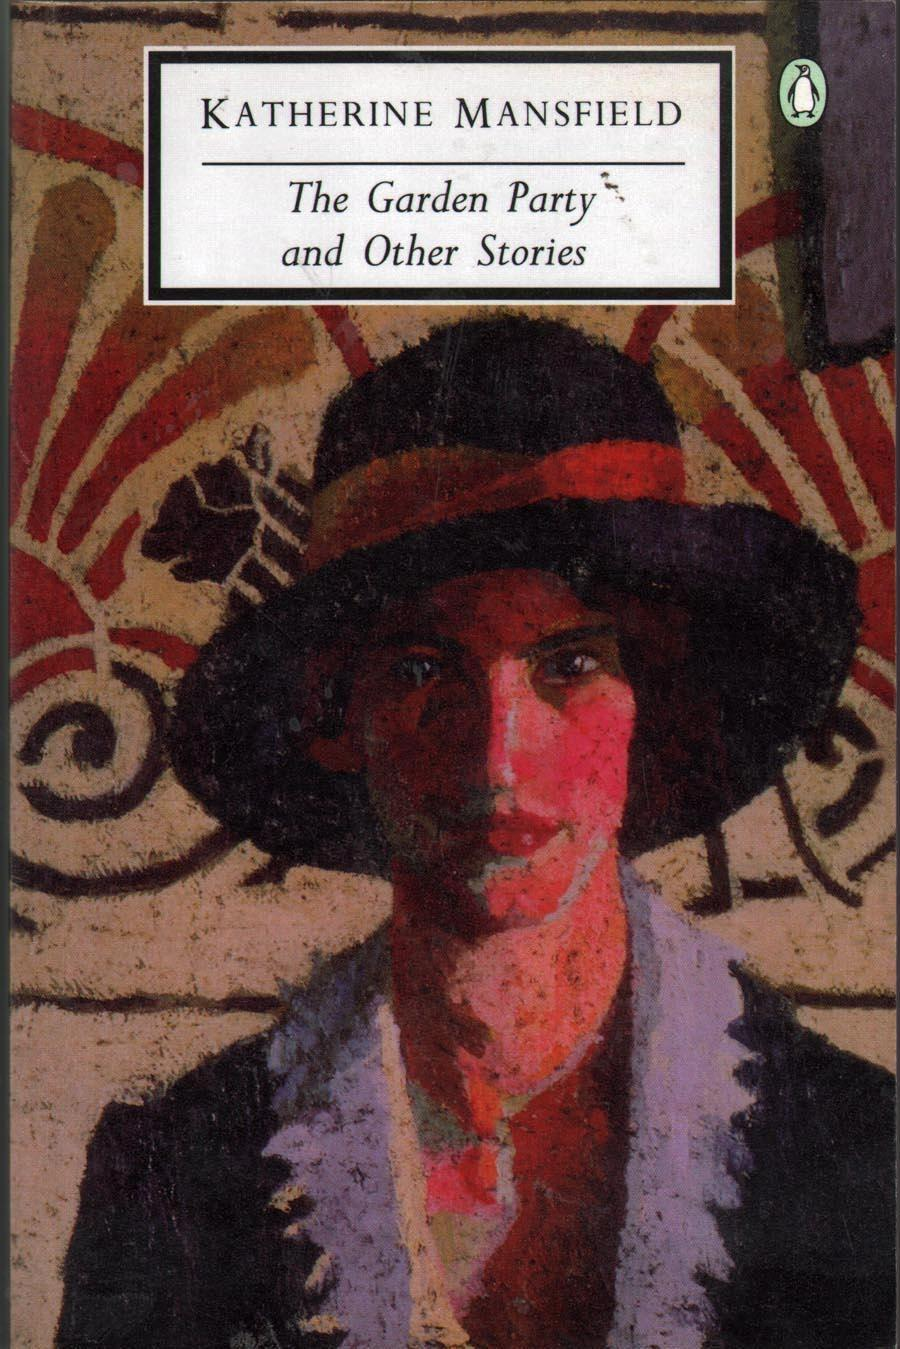 "<p>A pioneering modernist writing in the early 20s, Mansfield was brilliant at dissecting British mores and the class system - probably helped by growing up in New Zealand before moving to the country. She died too young, but left a legacy of brilliant work of which The Garden Party may be the finest. <br></p><p><a class=""link rapid-noclick-resp"" href=""https://www.amazon.co.uk/Garden-Party-Stories-Penguin-Classics/dp/0141441801?tag=hearstuk-yahoo-21&ascsubtag=%5Bartid%7C1923.g.15840493%5Bsrc%7Cyahoo-uk"" rel=""nofollow noopener"" target=""_blank"" data-ylk=""slk:SHOP"">SHOP</a><br></p>"